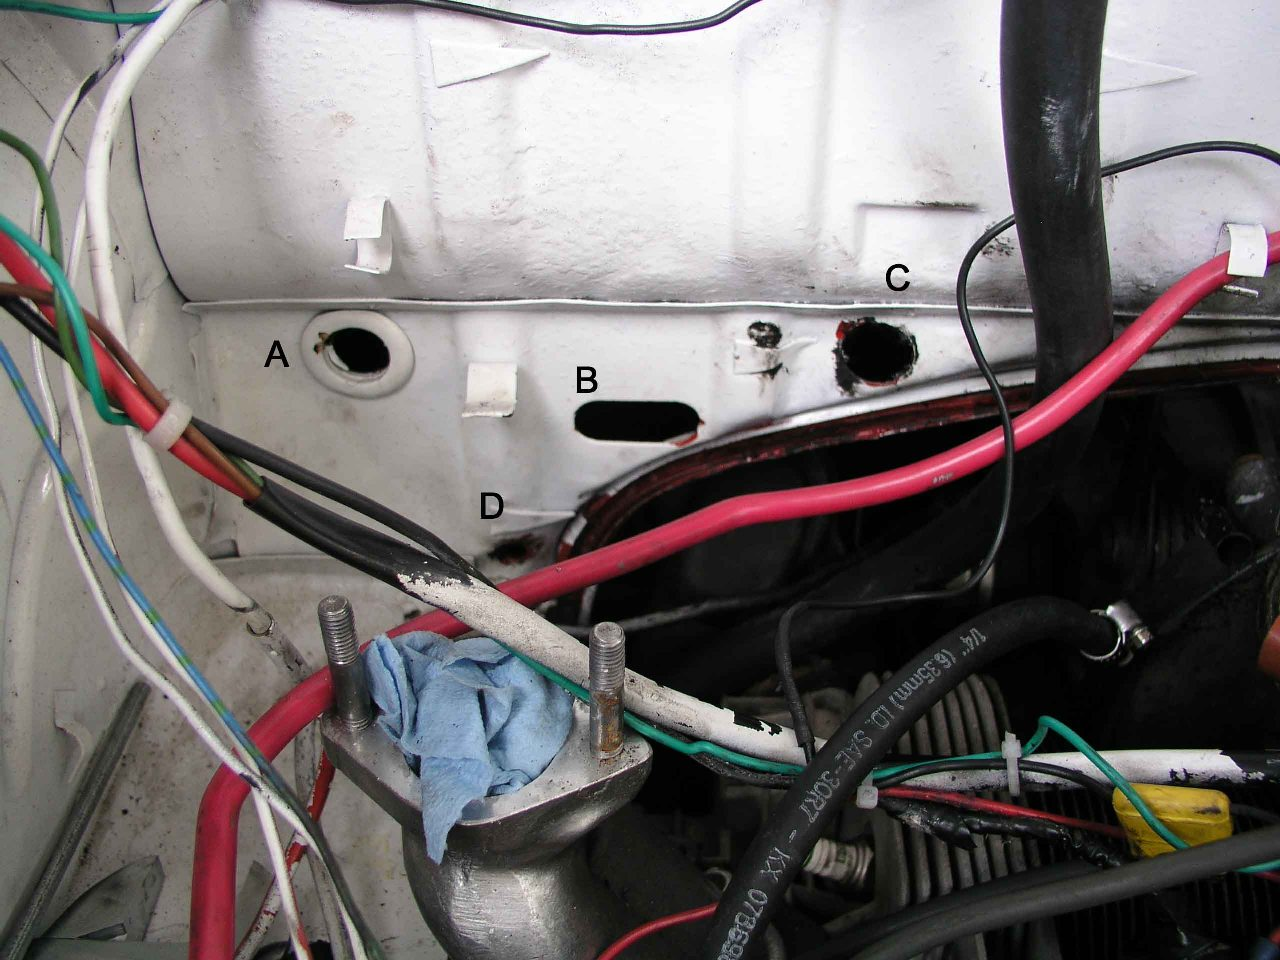 Ghia View Topic Which Firewall Hole Is For The Wire Harness Grommet Image May Have Been Reduced In Size Click To Fullscreen